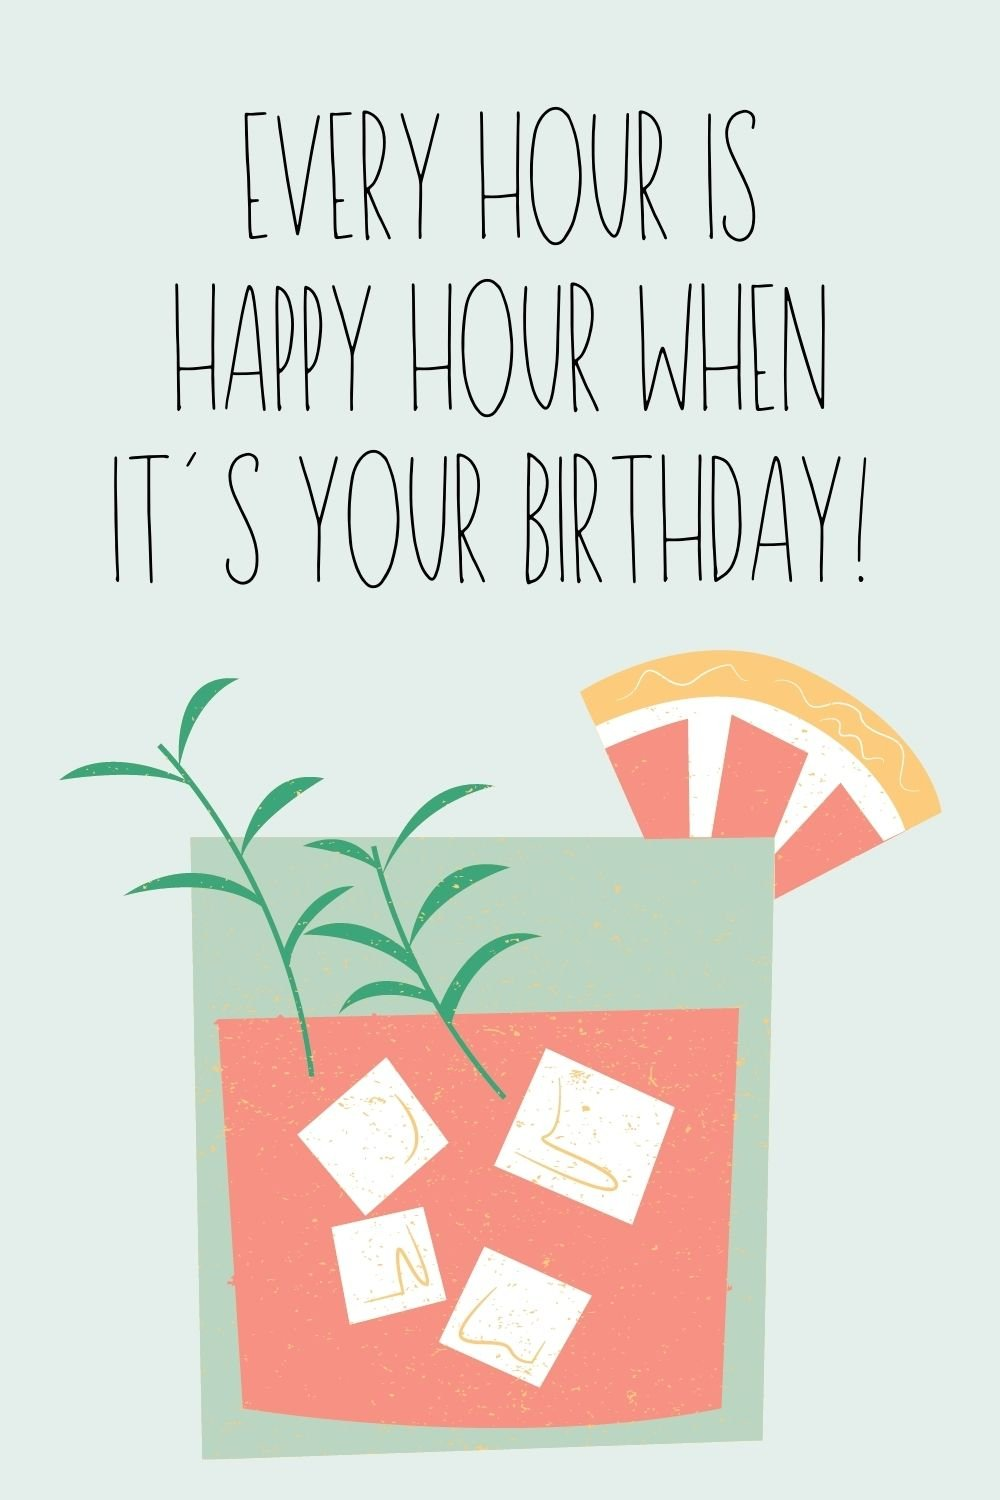 happy hour birthday sayings and quotes